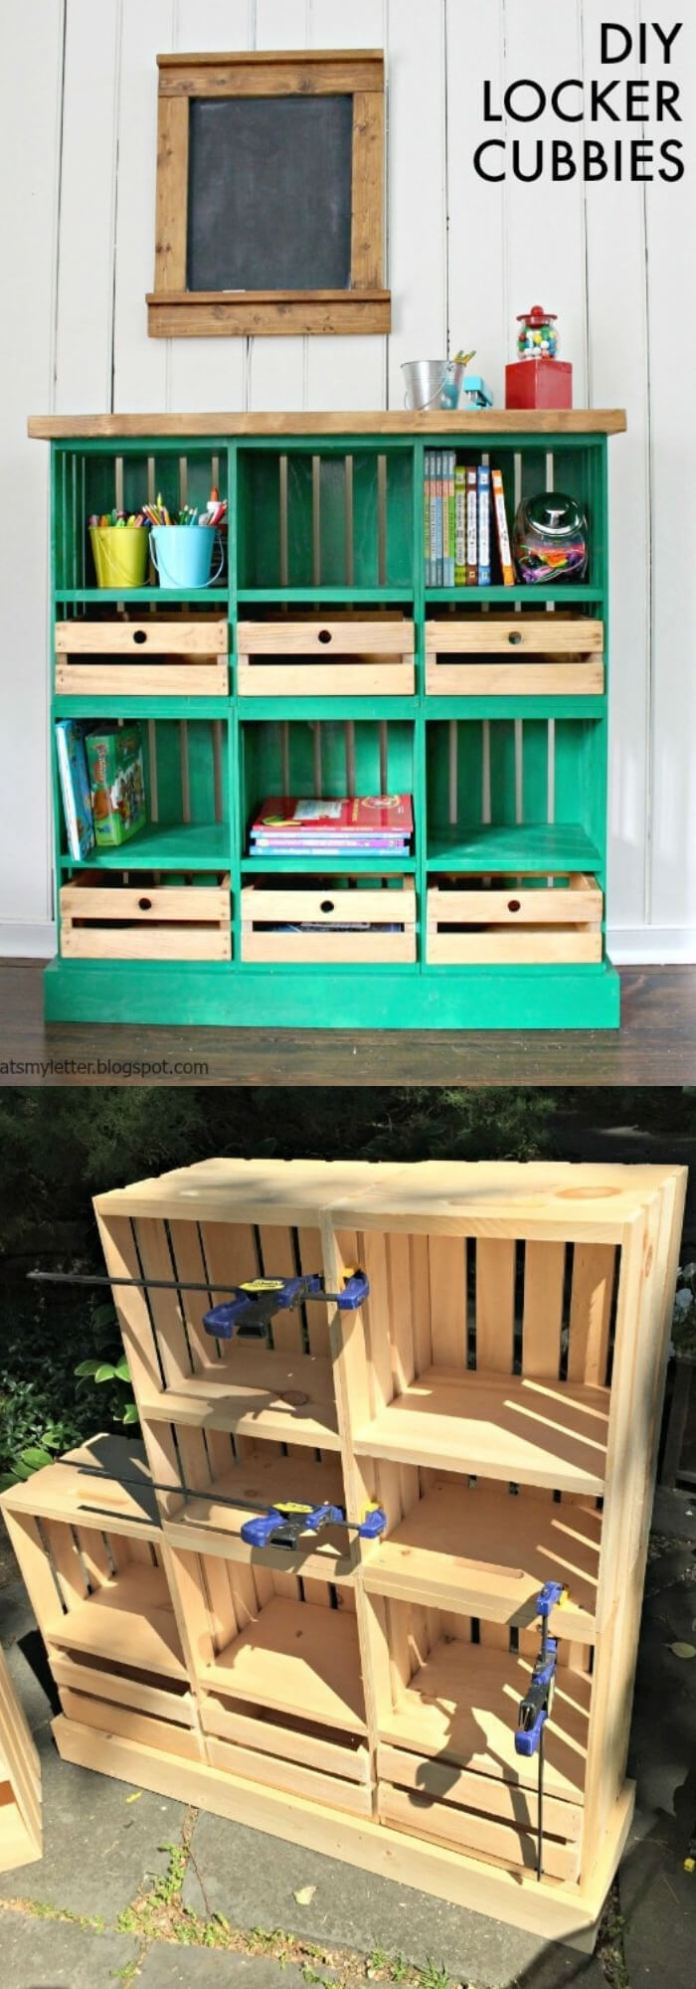 Crate Locker Cubbies | Best DIY Wood Crate Projects & Ideas